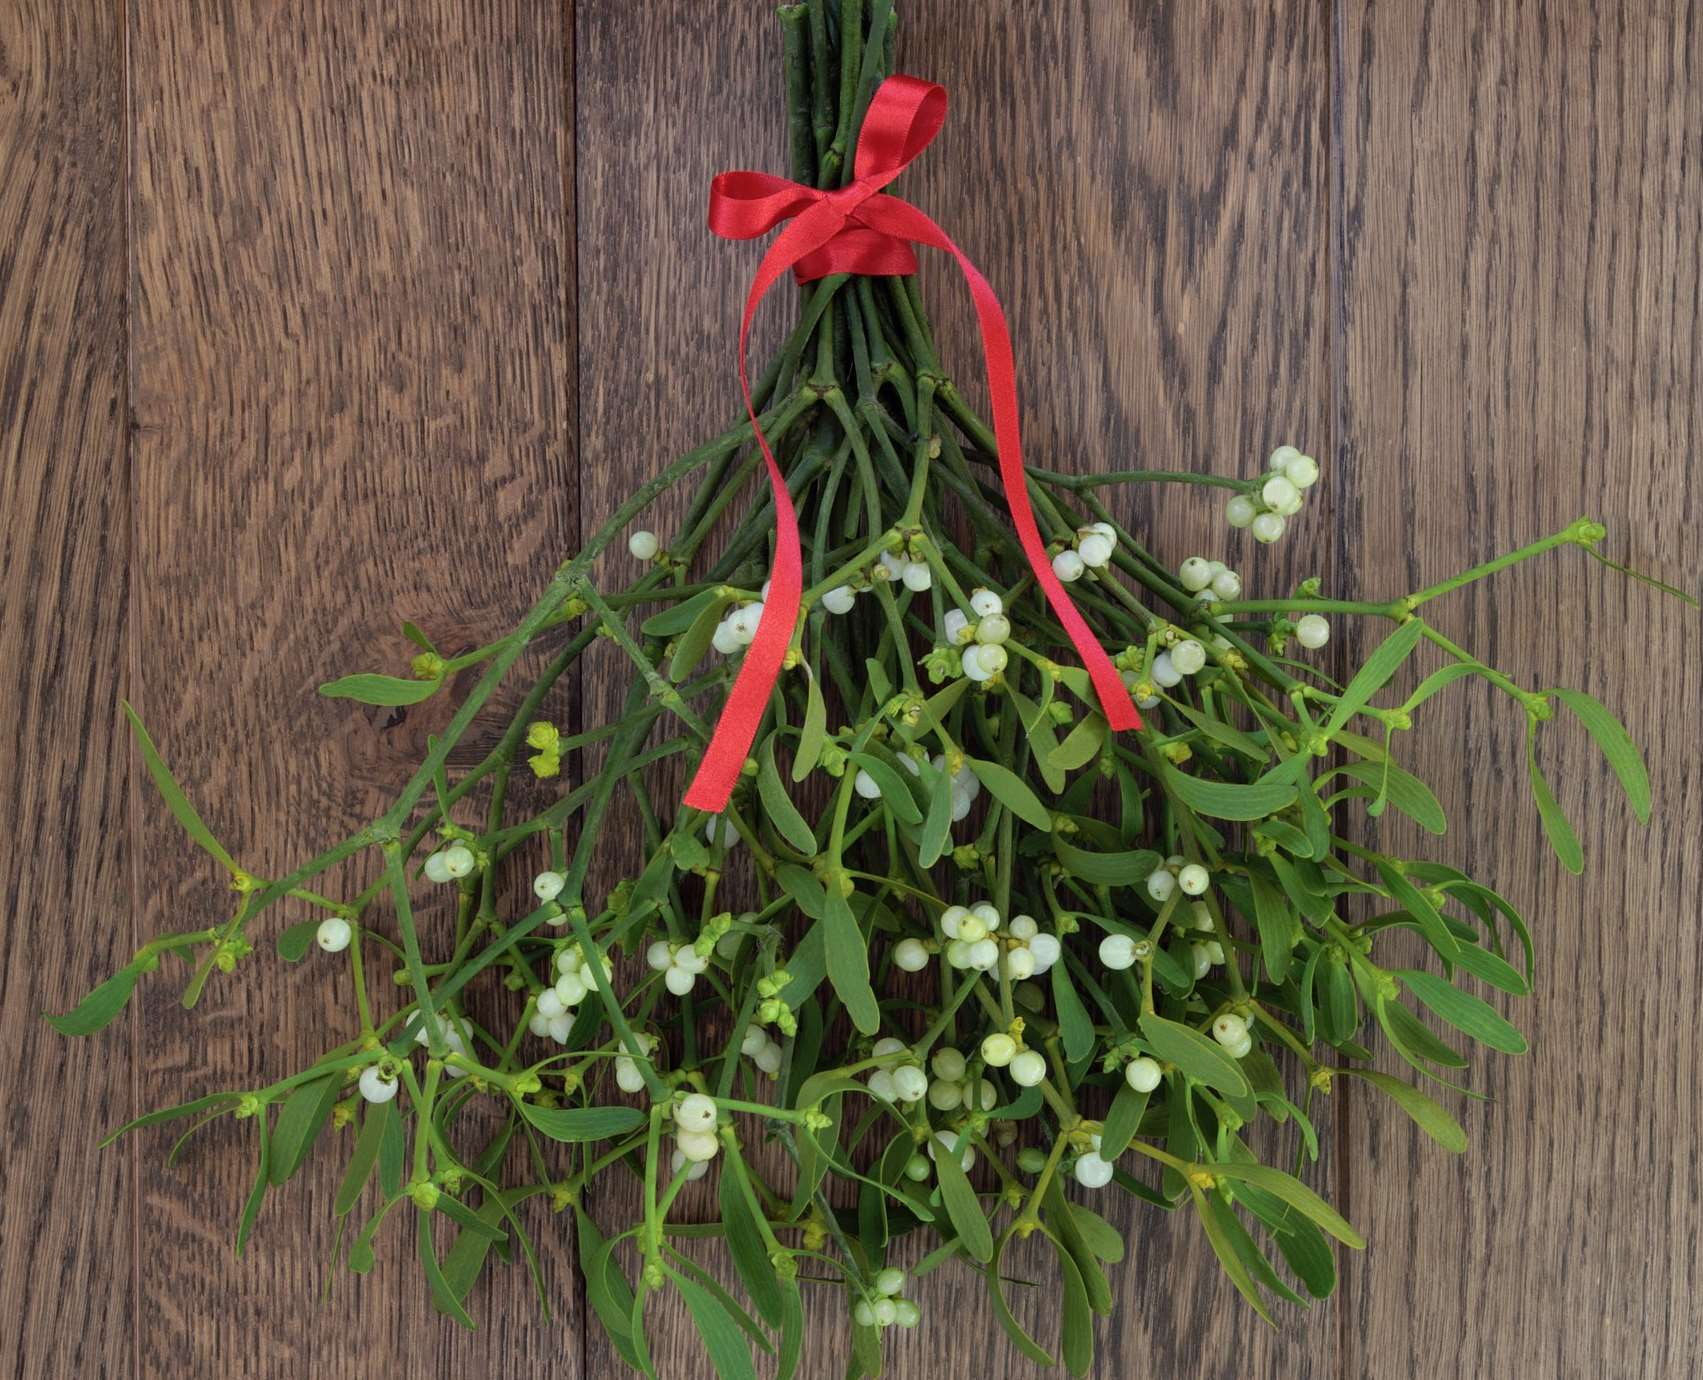 Christmas mistletoe